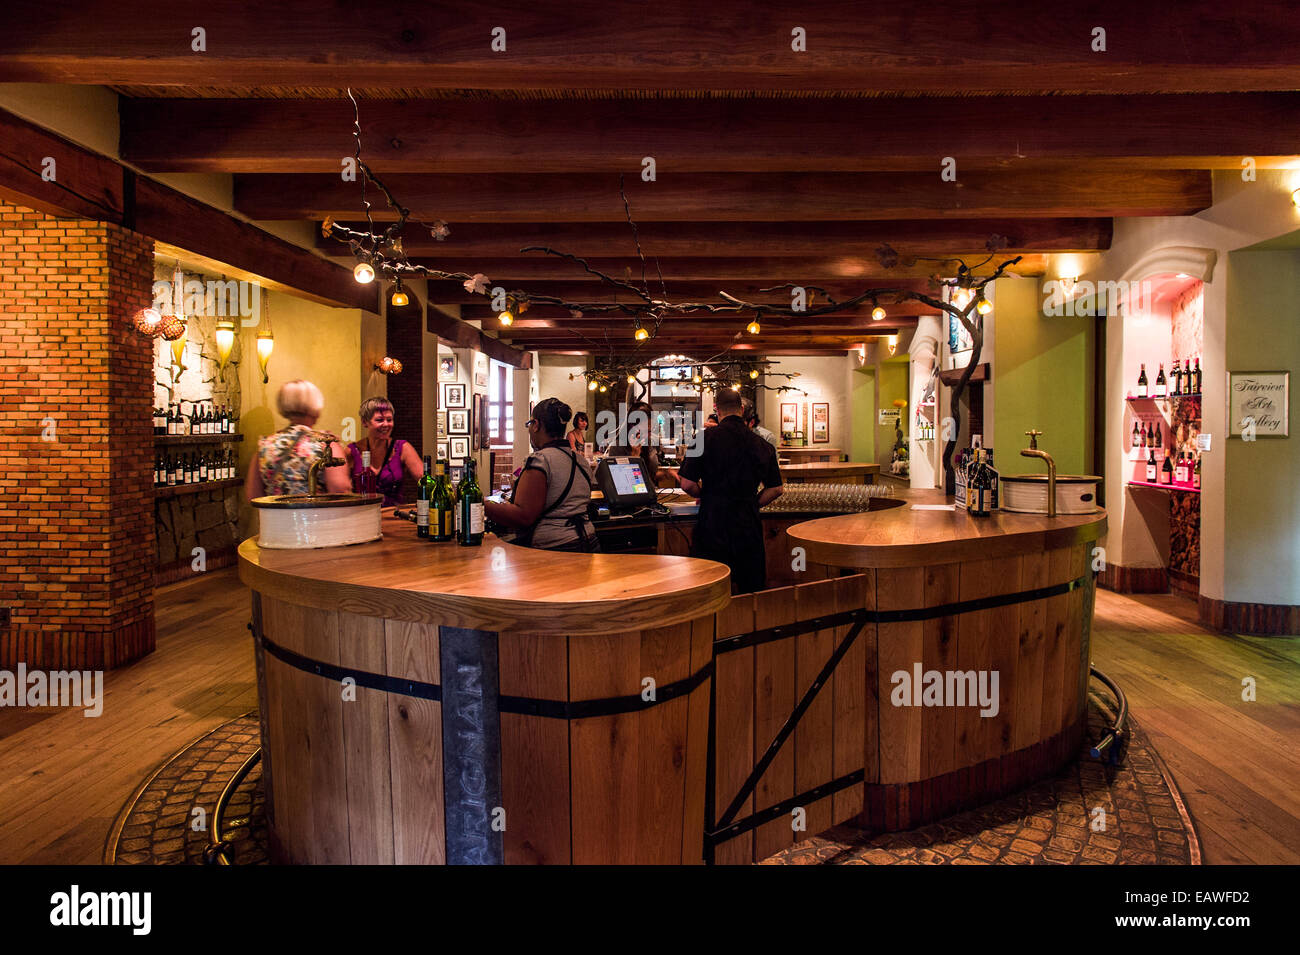 A vineyard cellar door where guests can purchase bottles of wine. - Stock Image